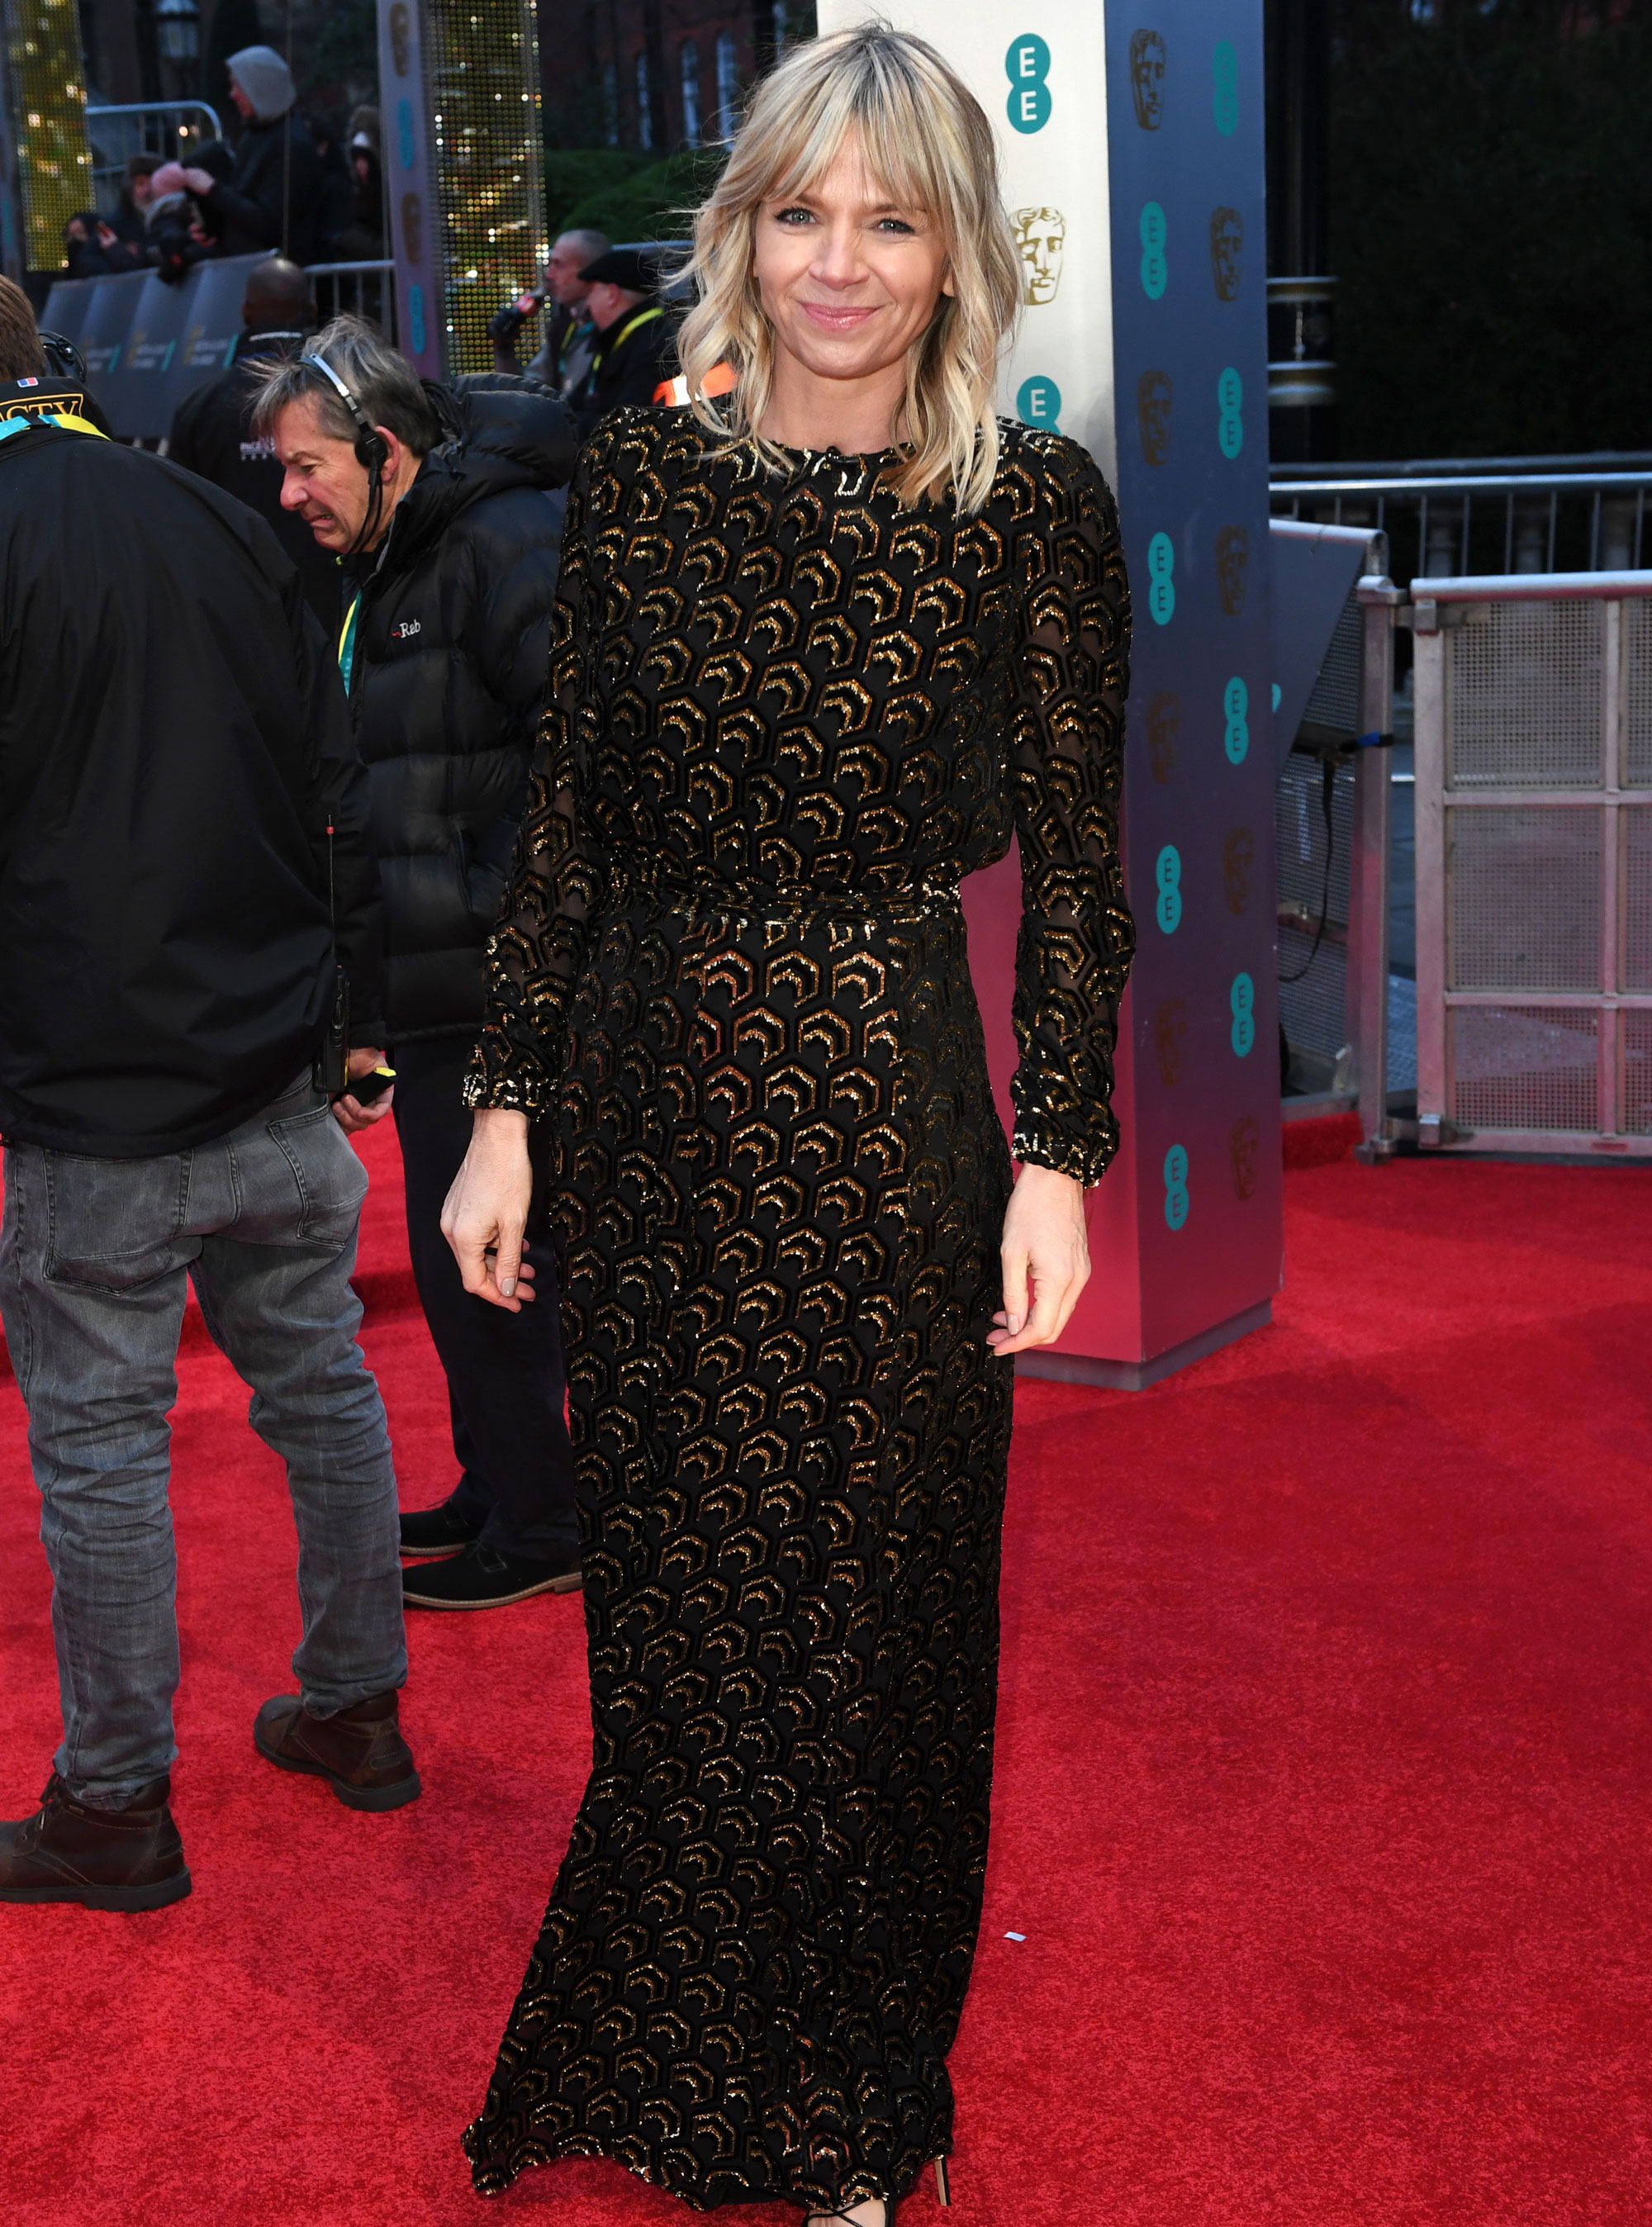 Zoe Ball Opens Up About The Menopause